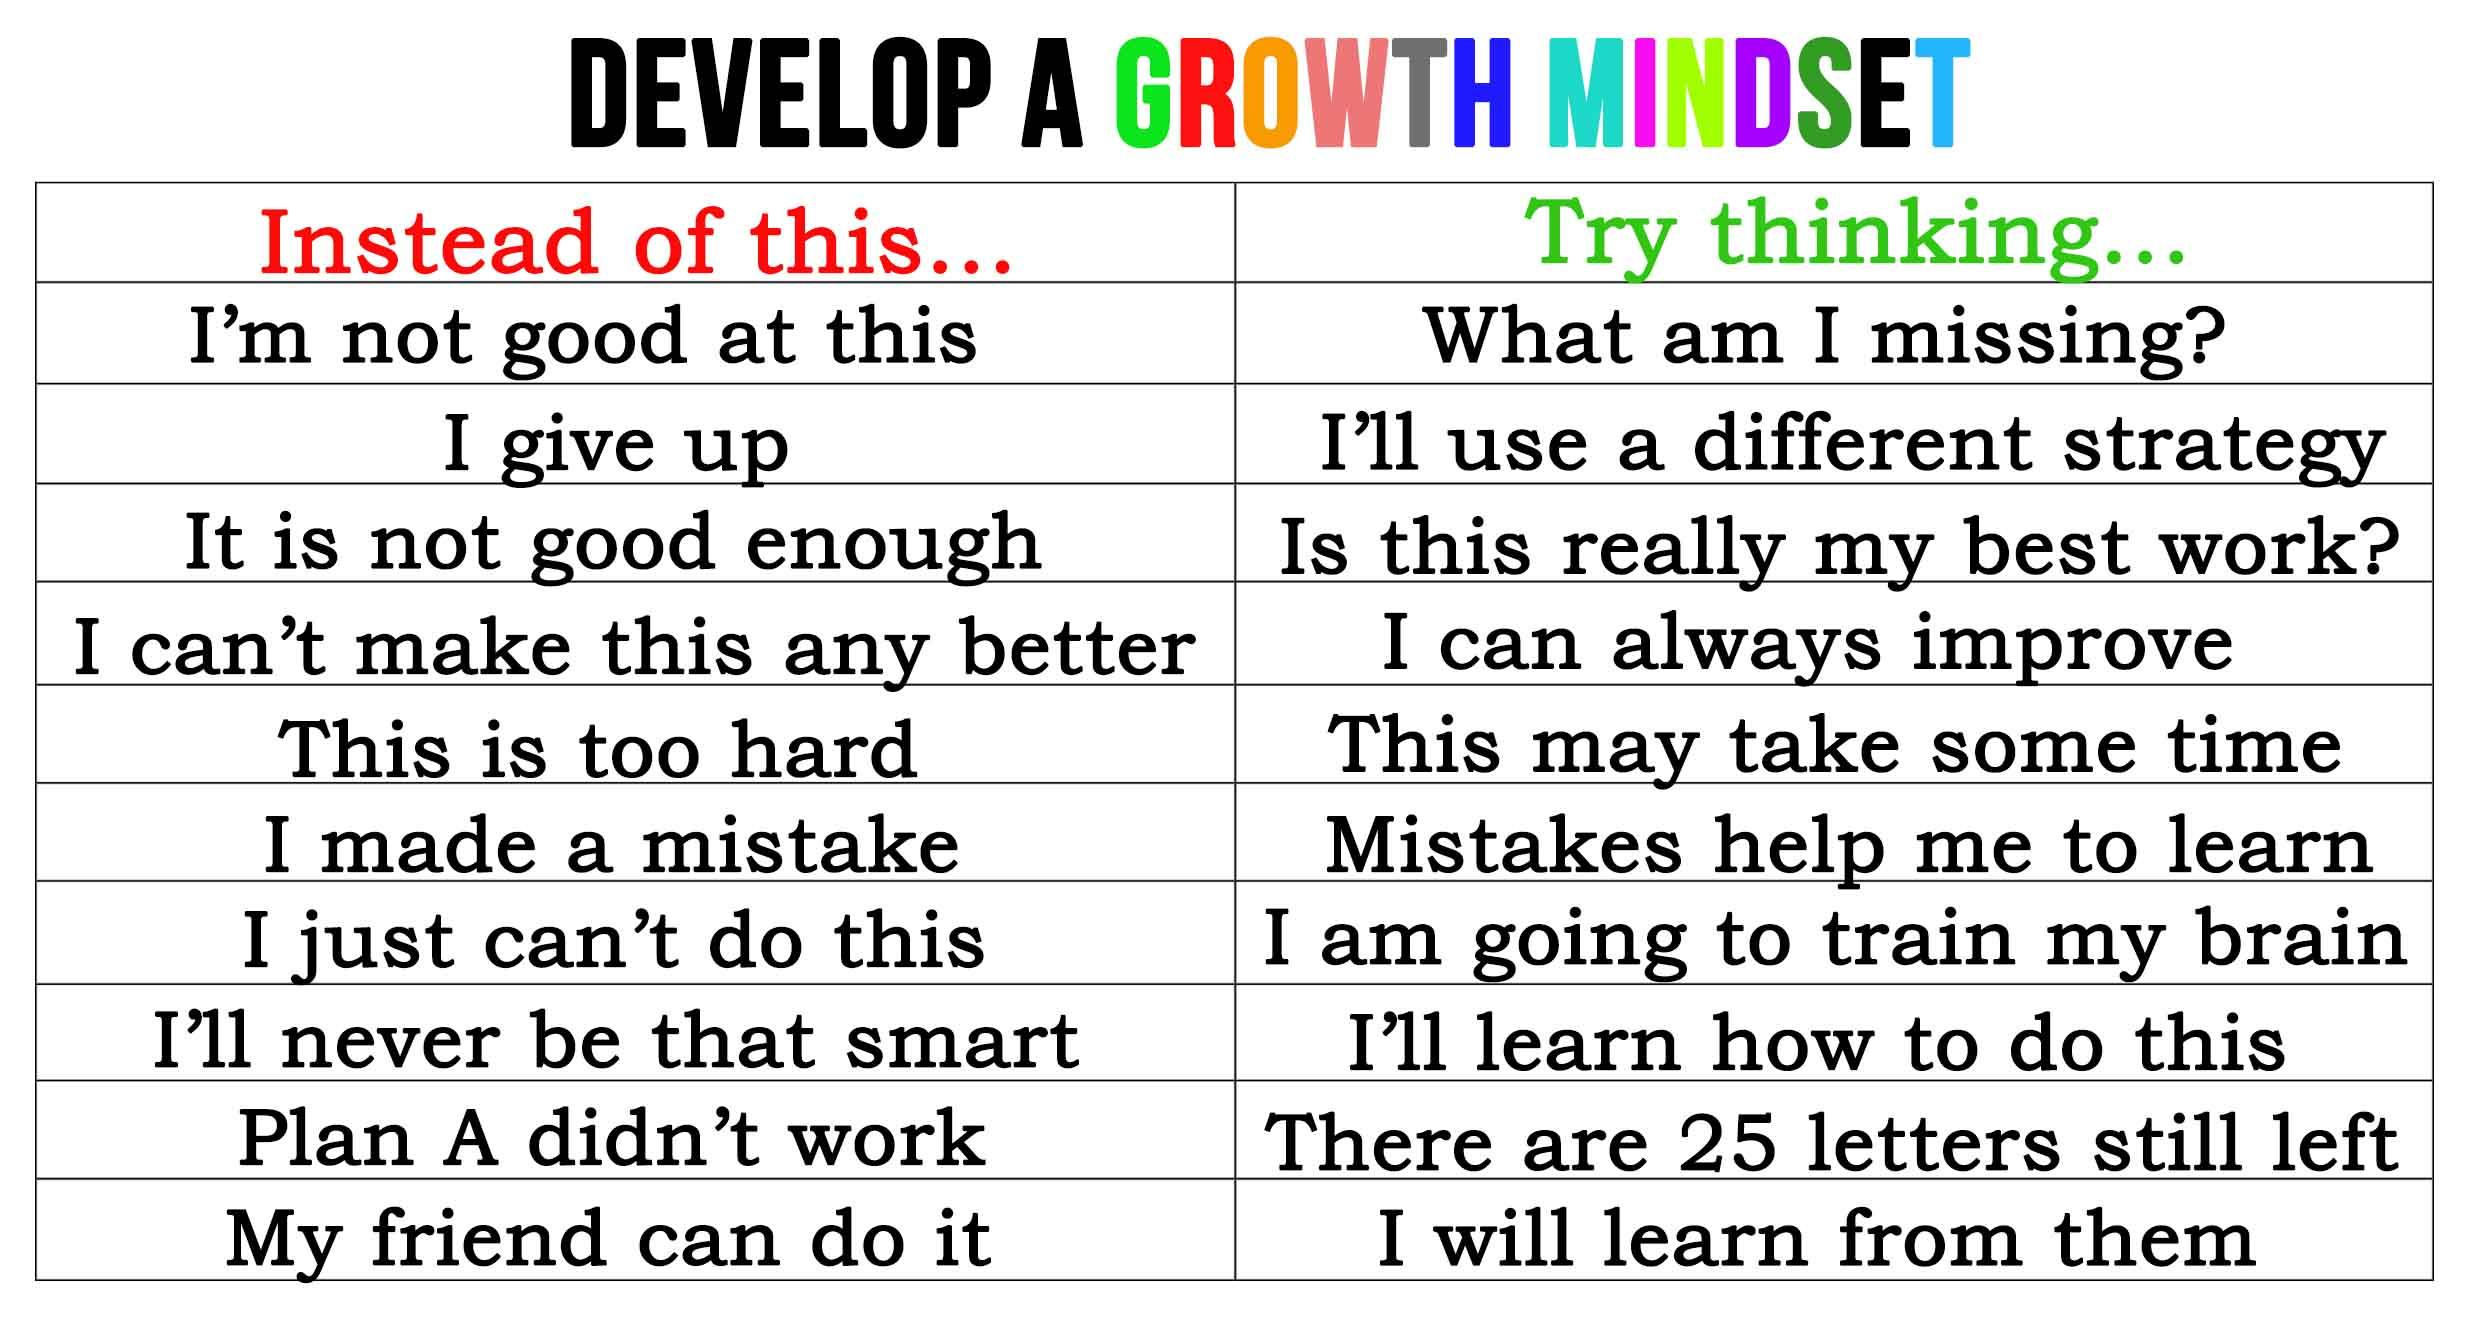 [image] Develop a growth mindset